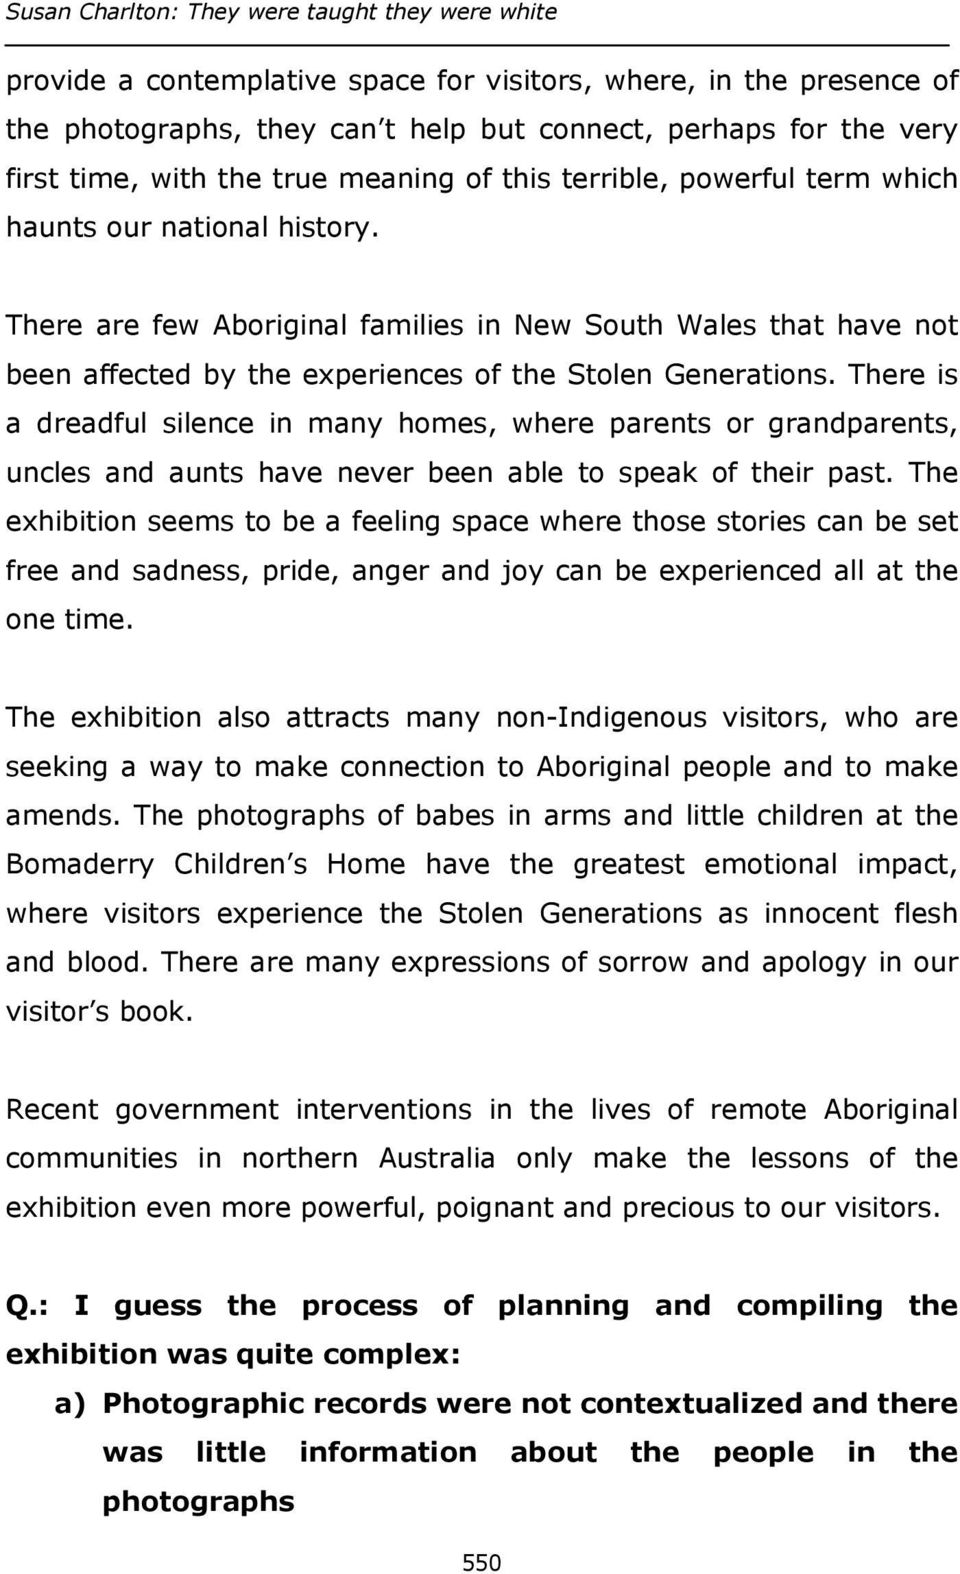 There are few Aboriginal families in New South Wales that have not been affected by the experiences of the Stolen Generations.